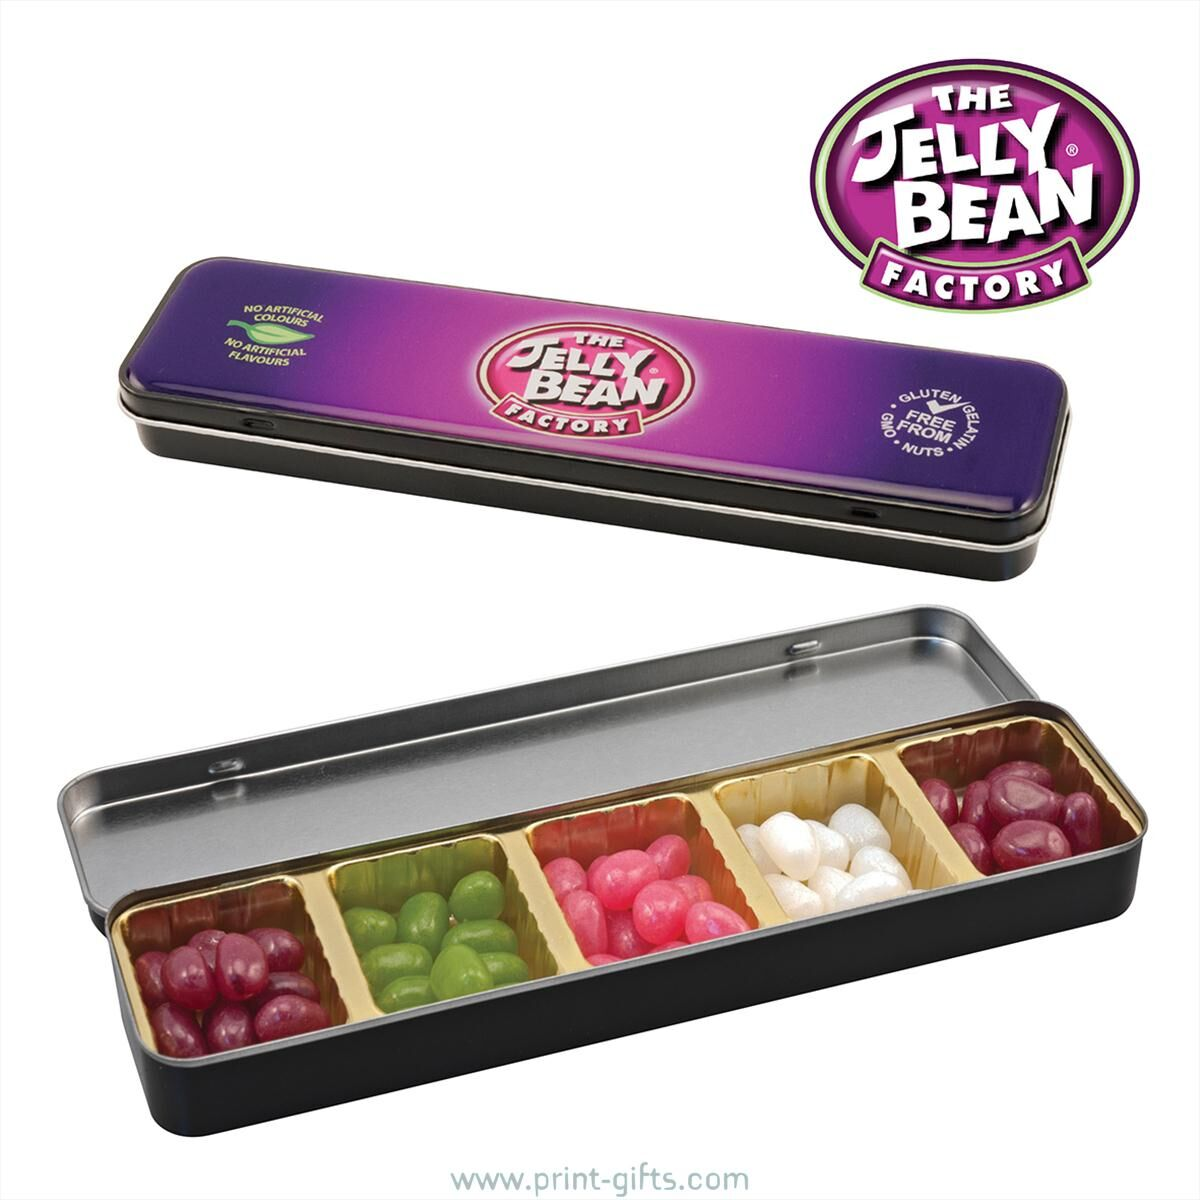 Printed Tins of Gourmet Jelly Beans